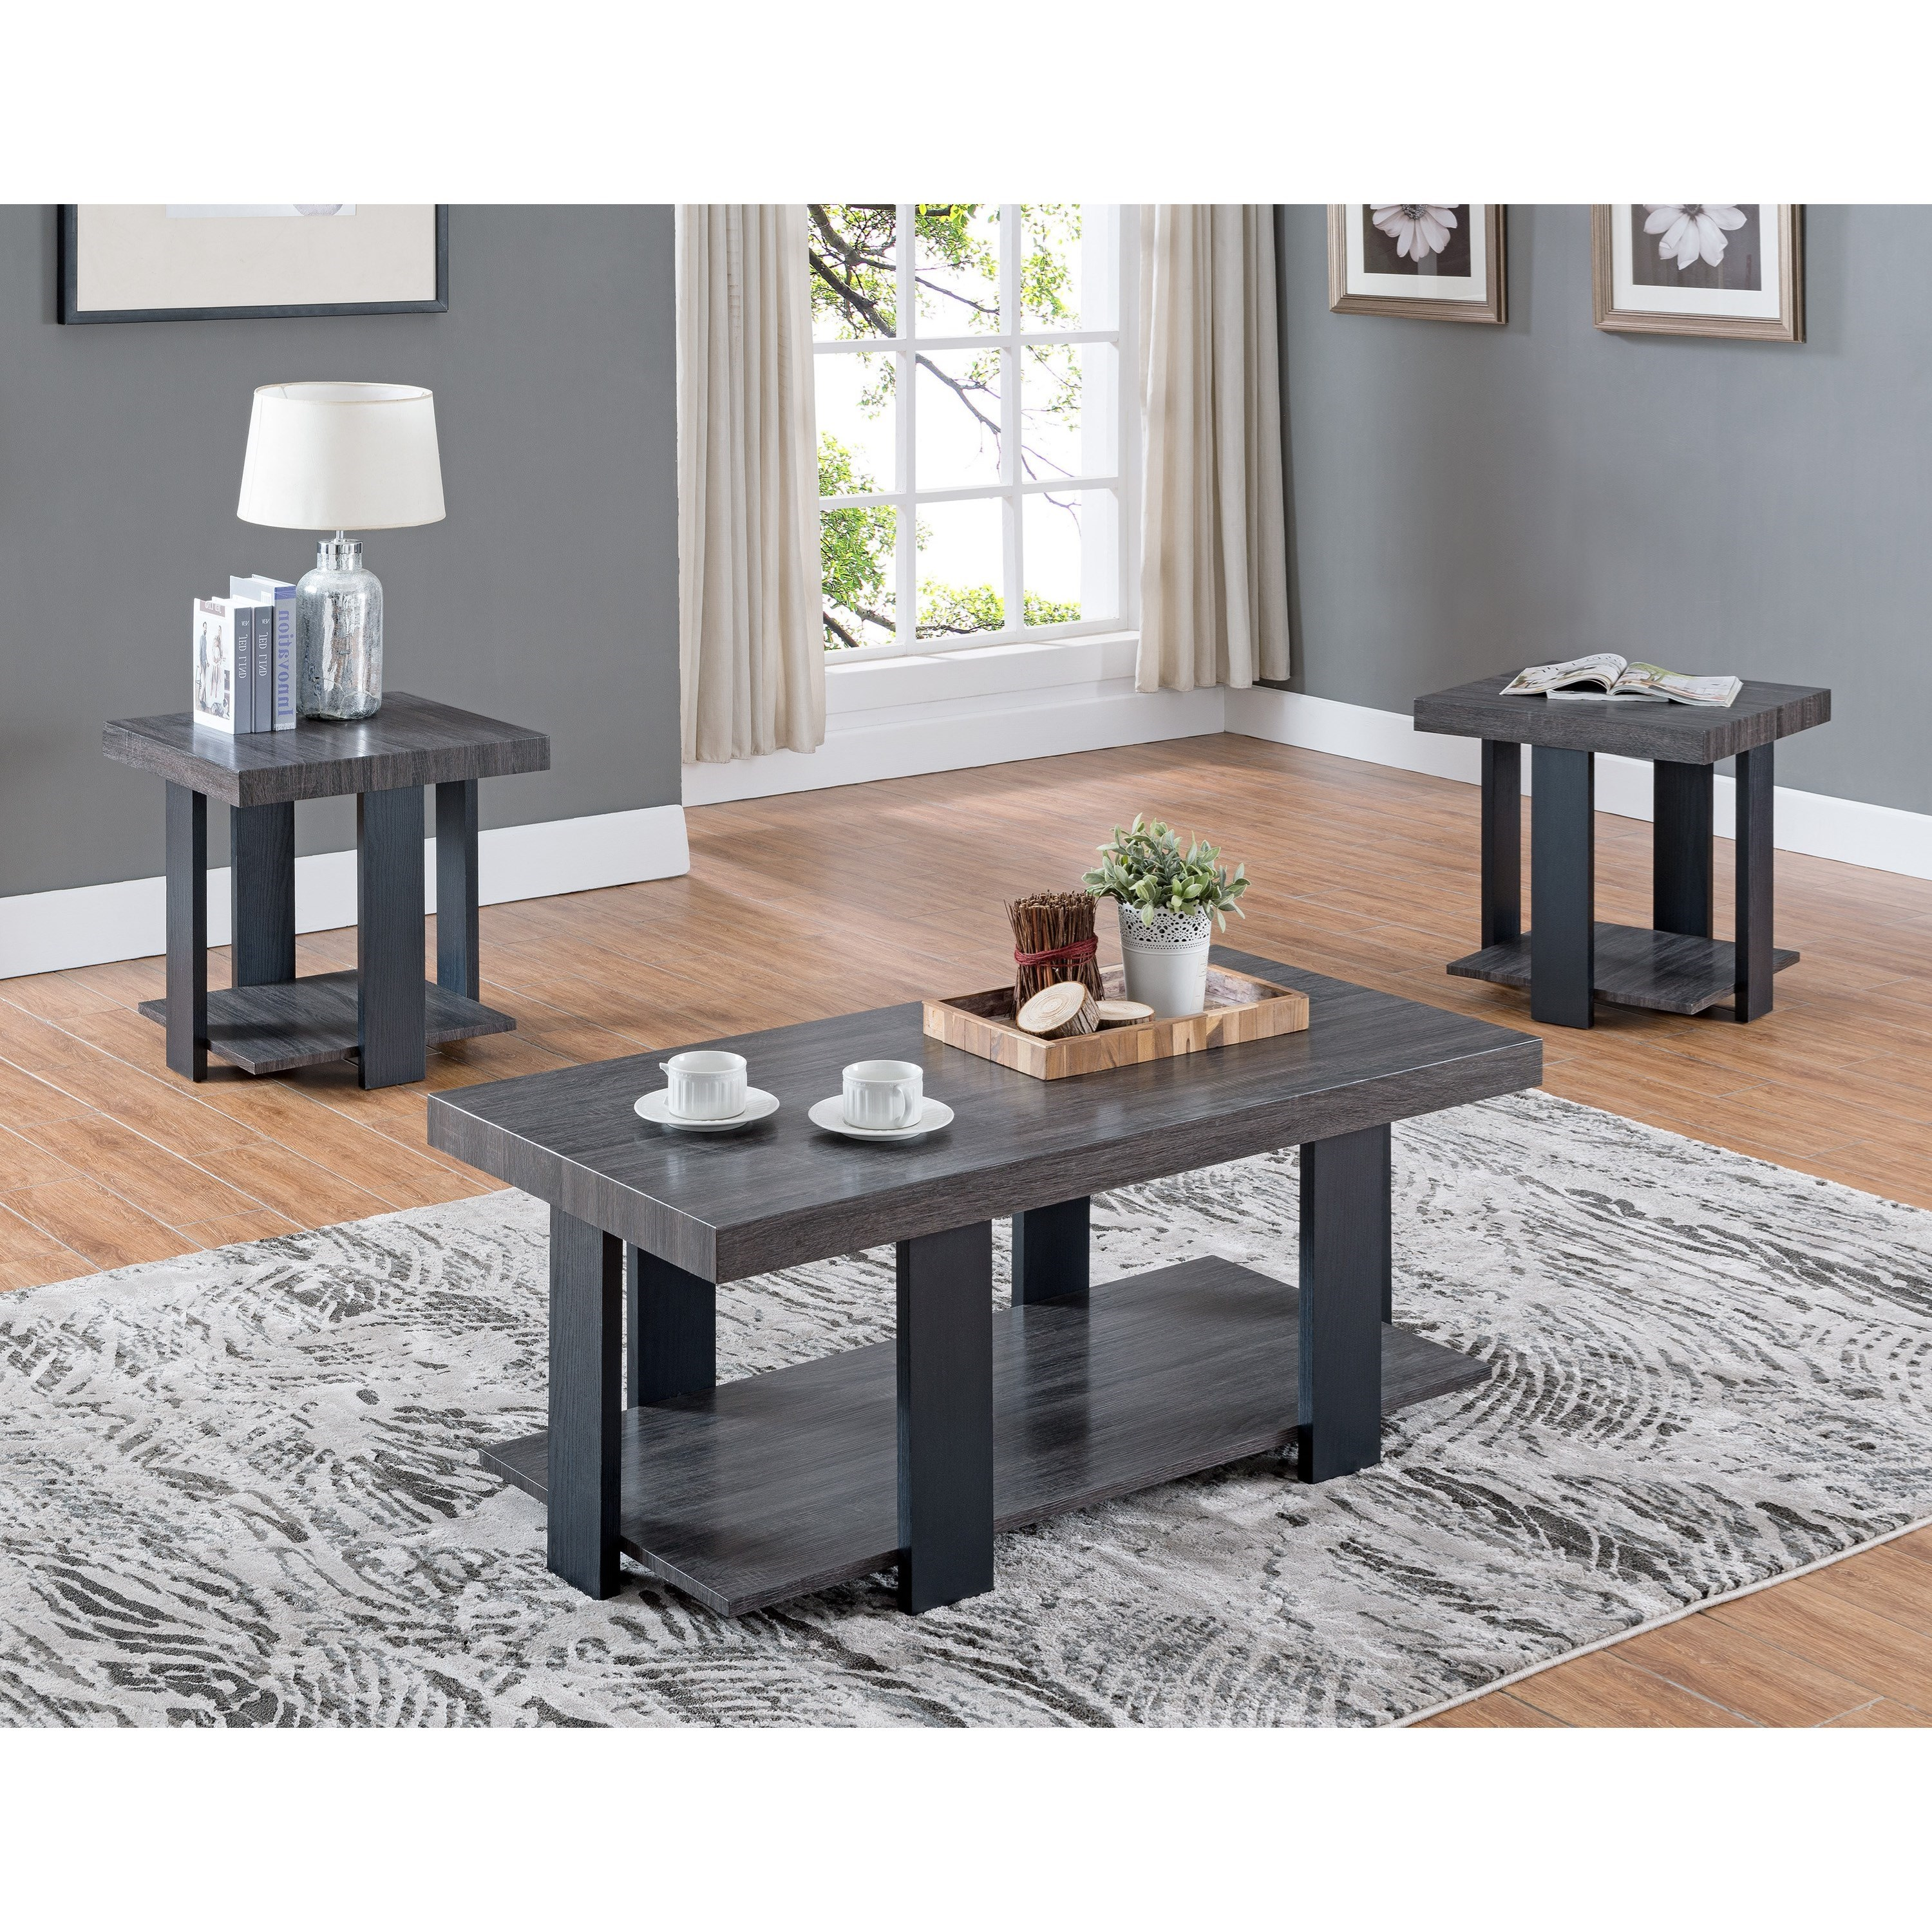 Randy Occasional Table Set by Crown Mark at A1 Furniture & Mattress